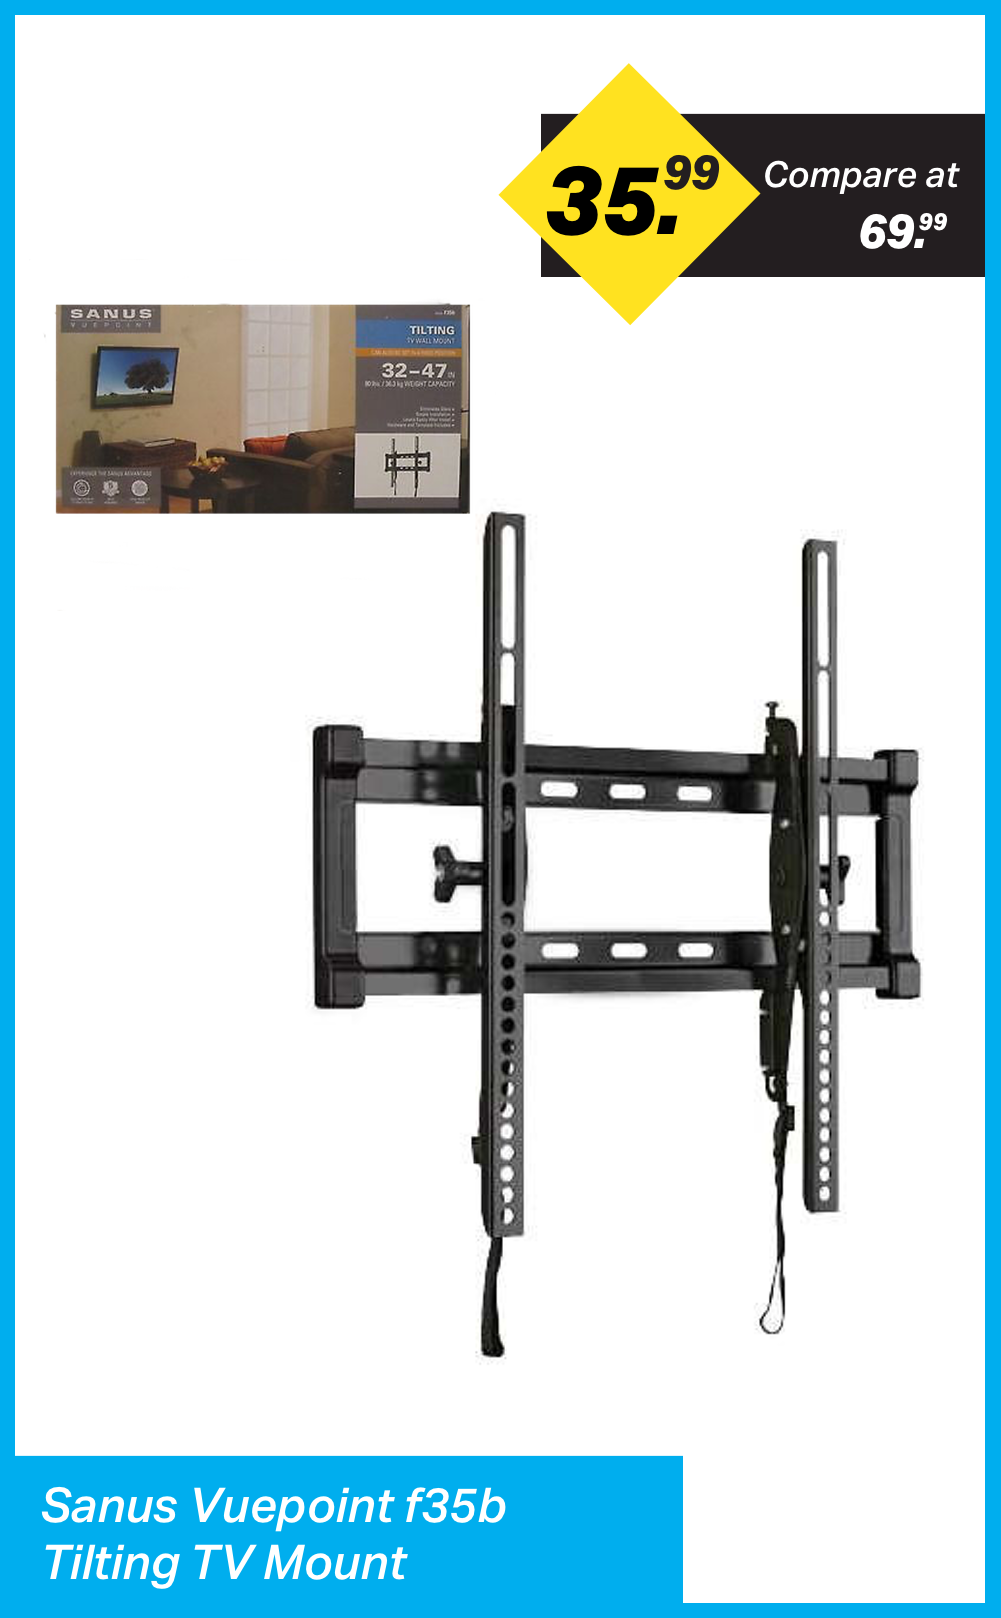 Sanus VuePoint f35b Tilting TV Mount